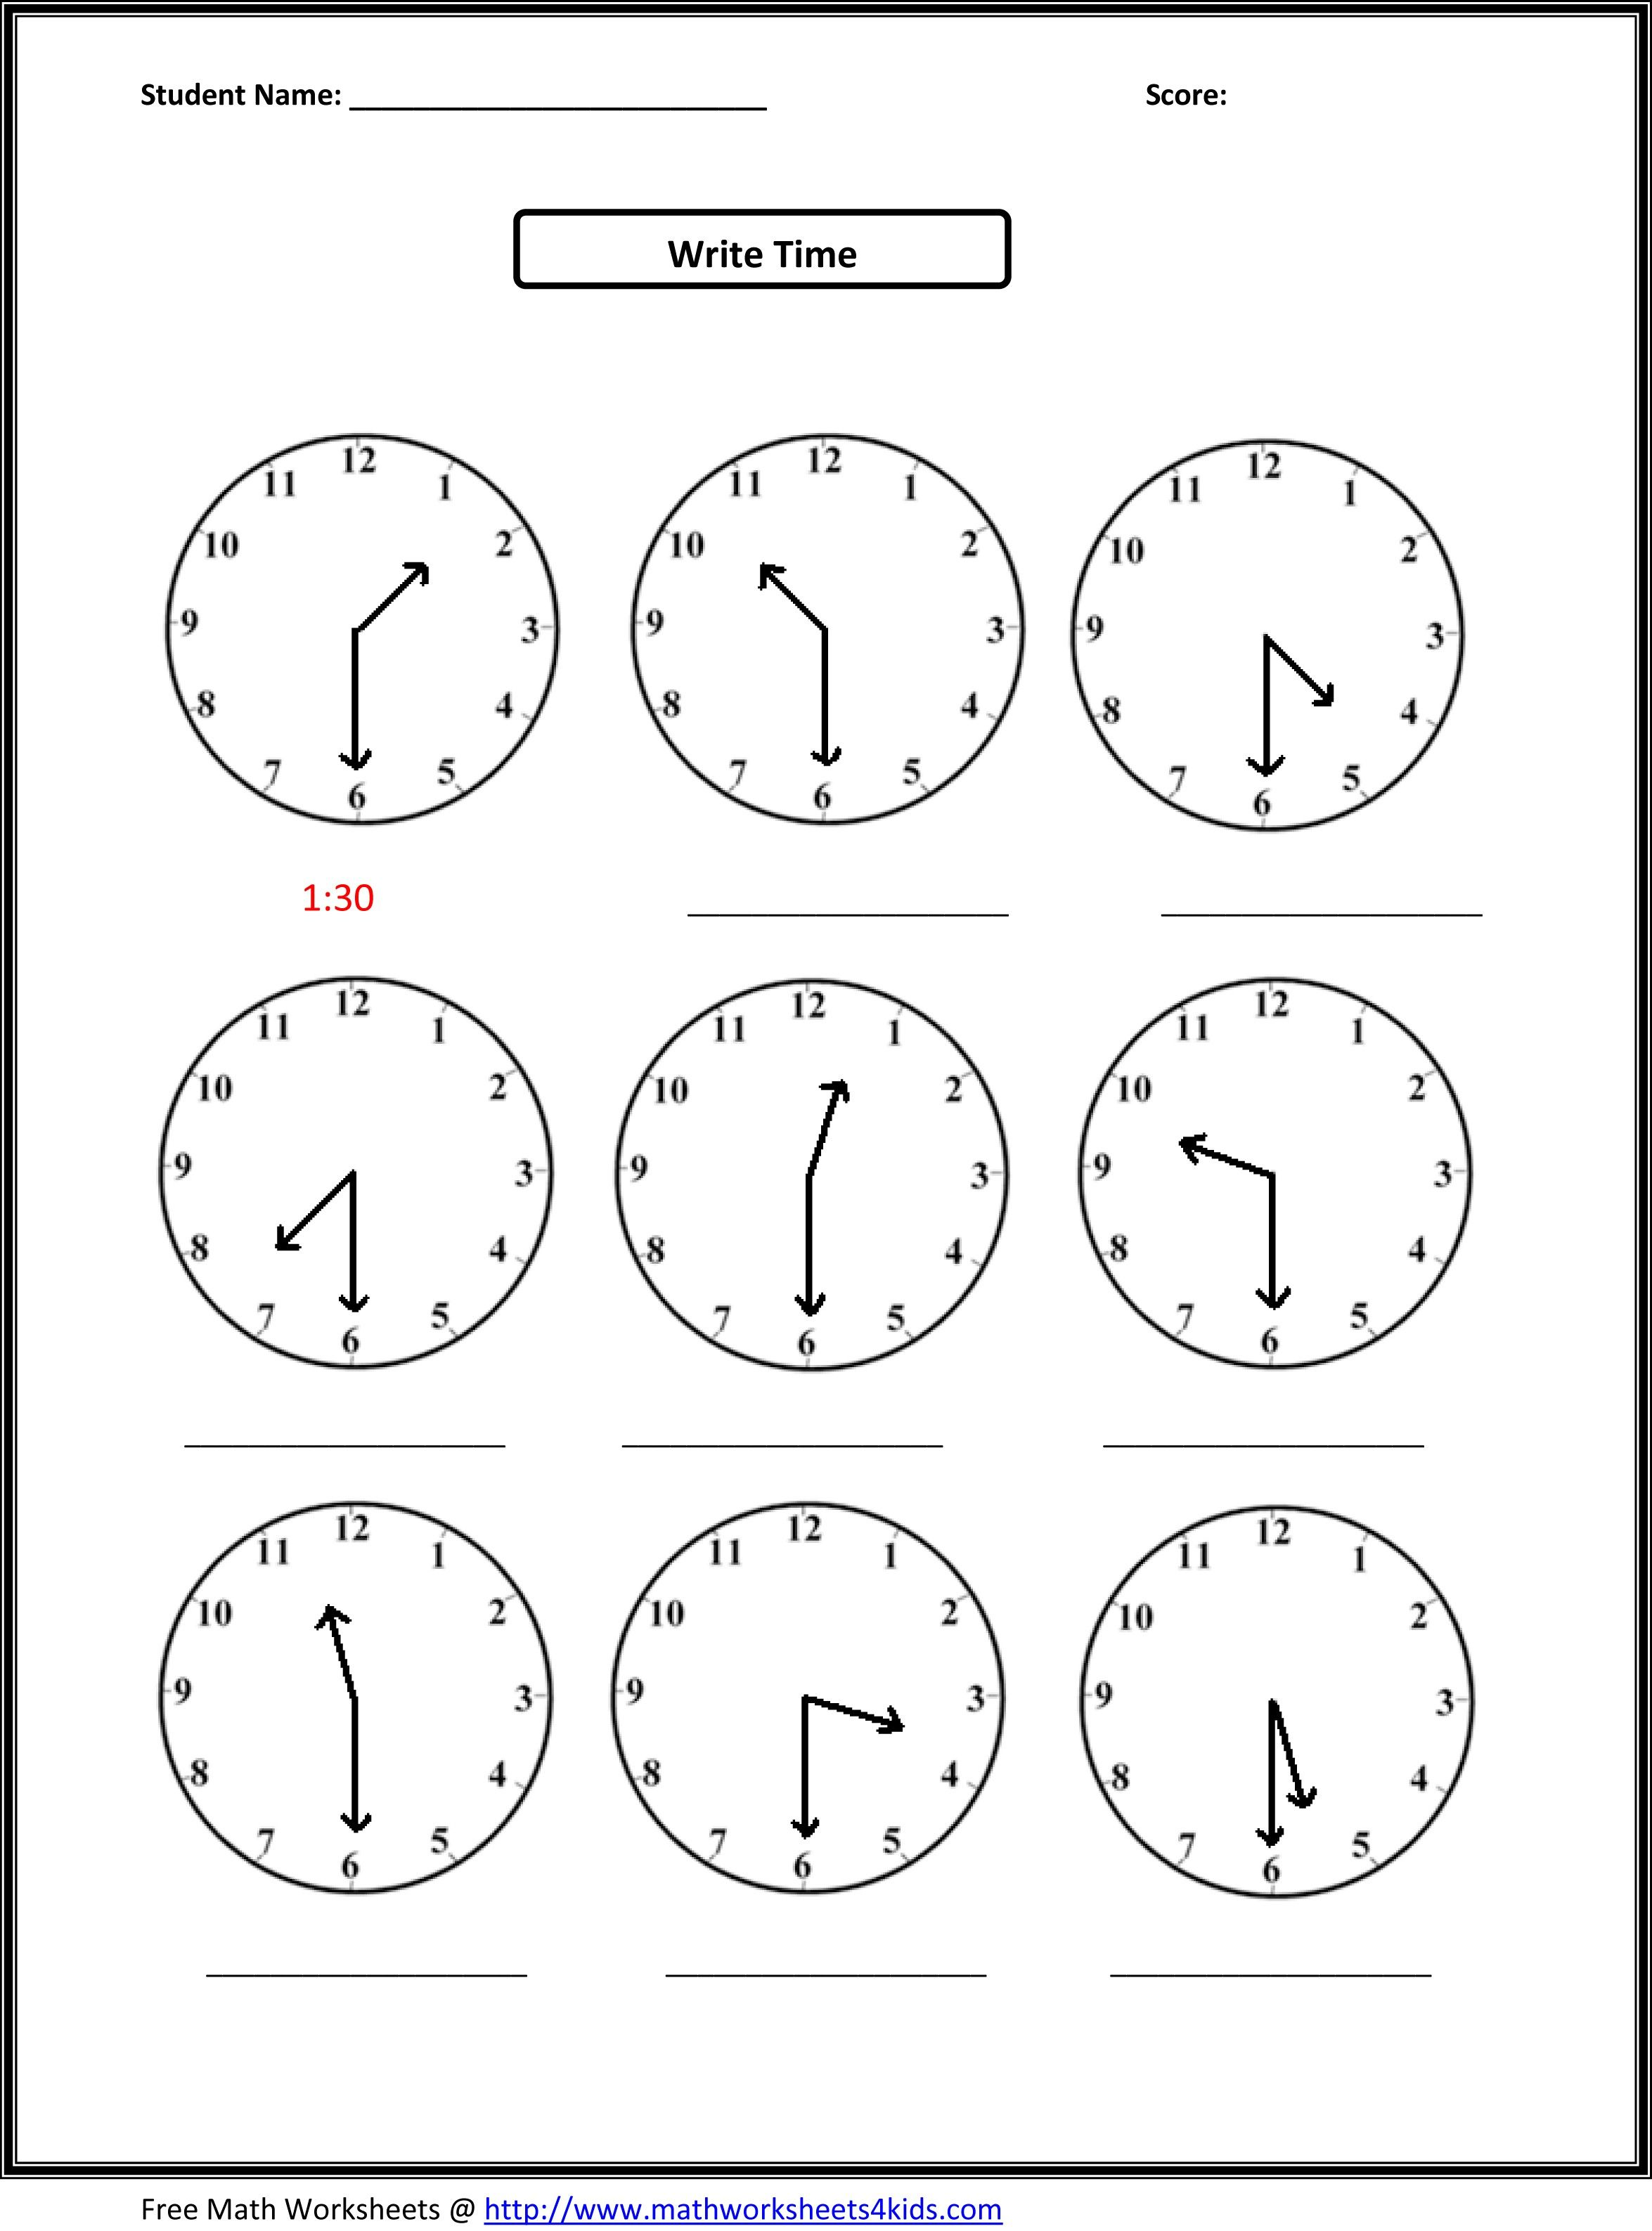 Uncategorized Worksheet For Math 2nd grade free worksheets math timemeasurement math